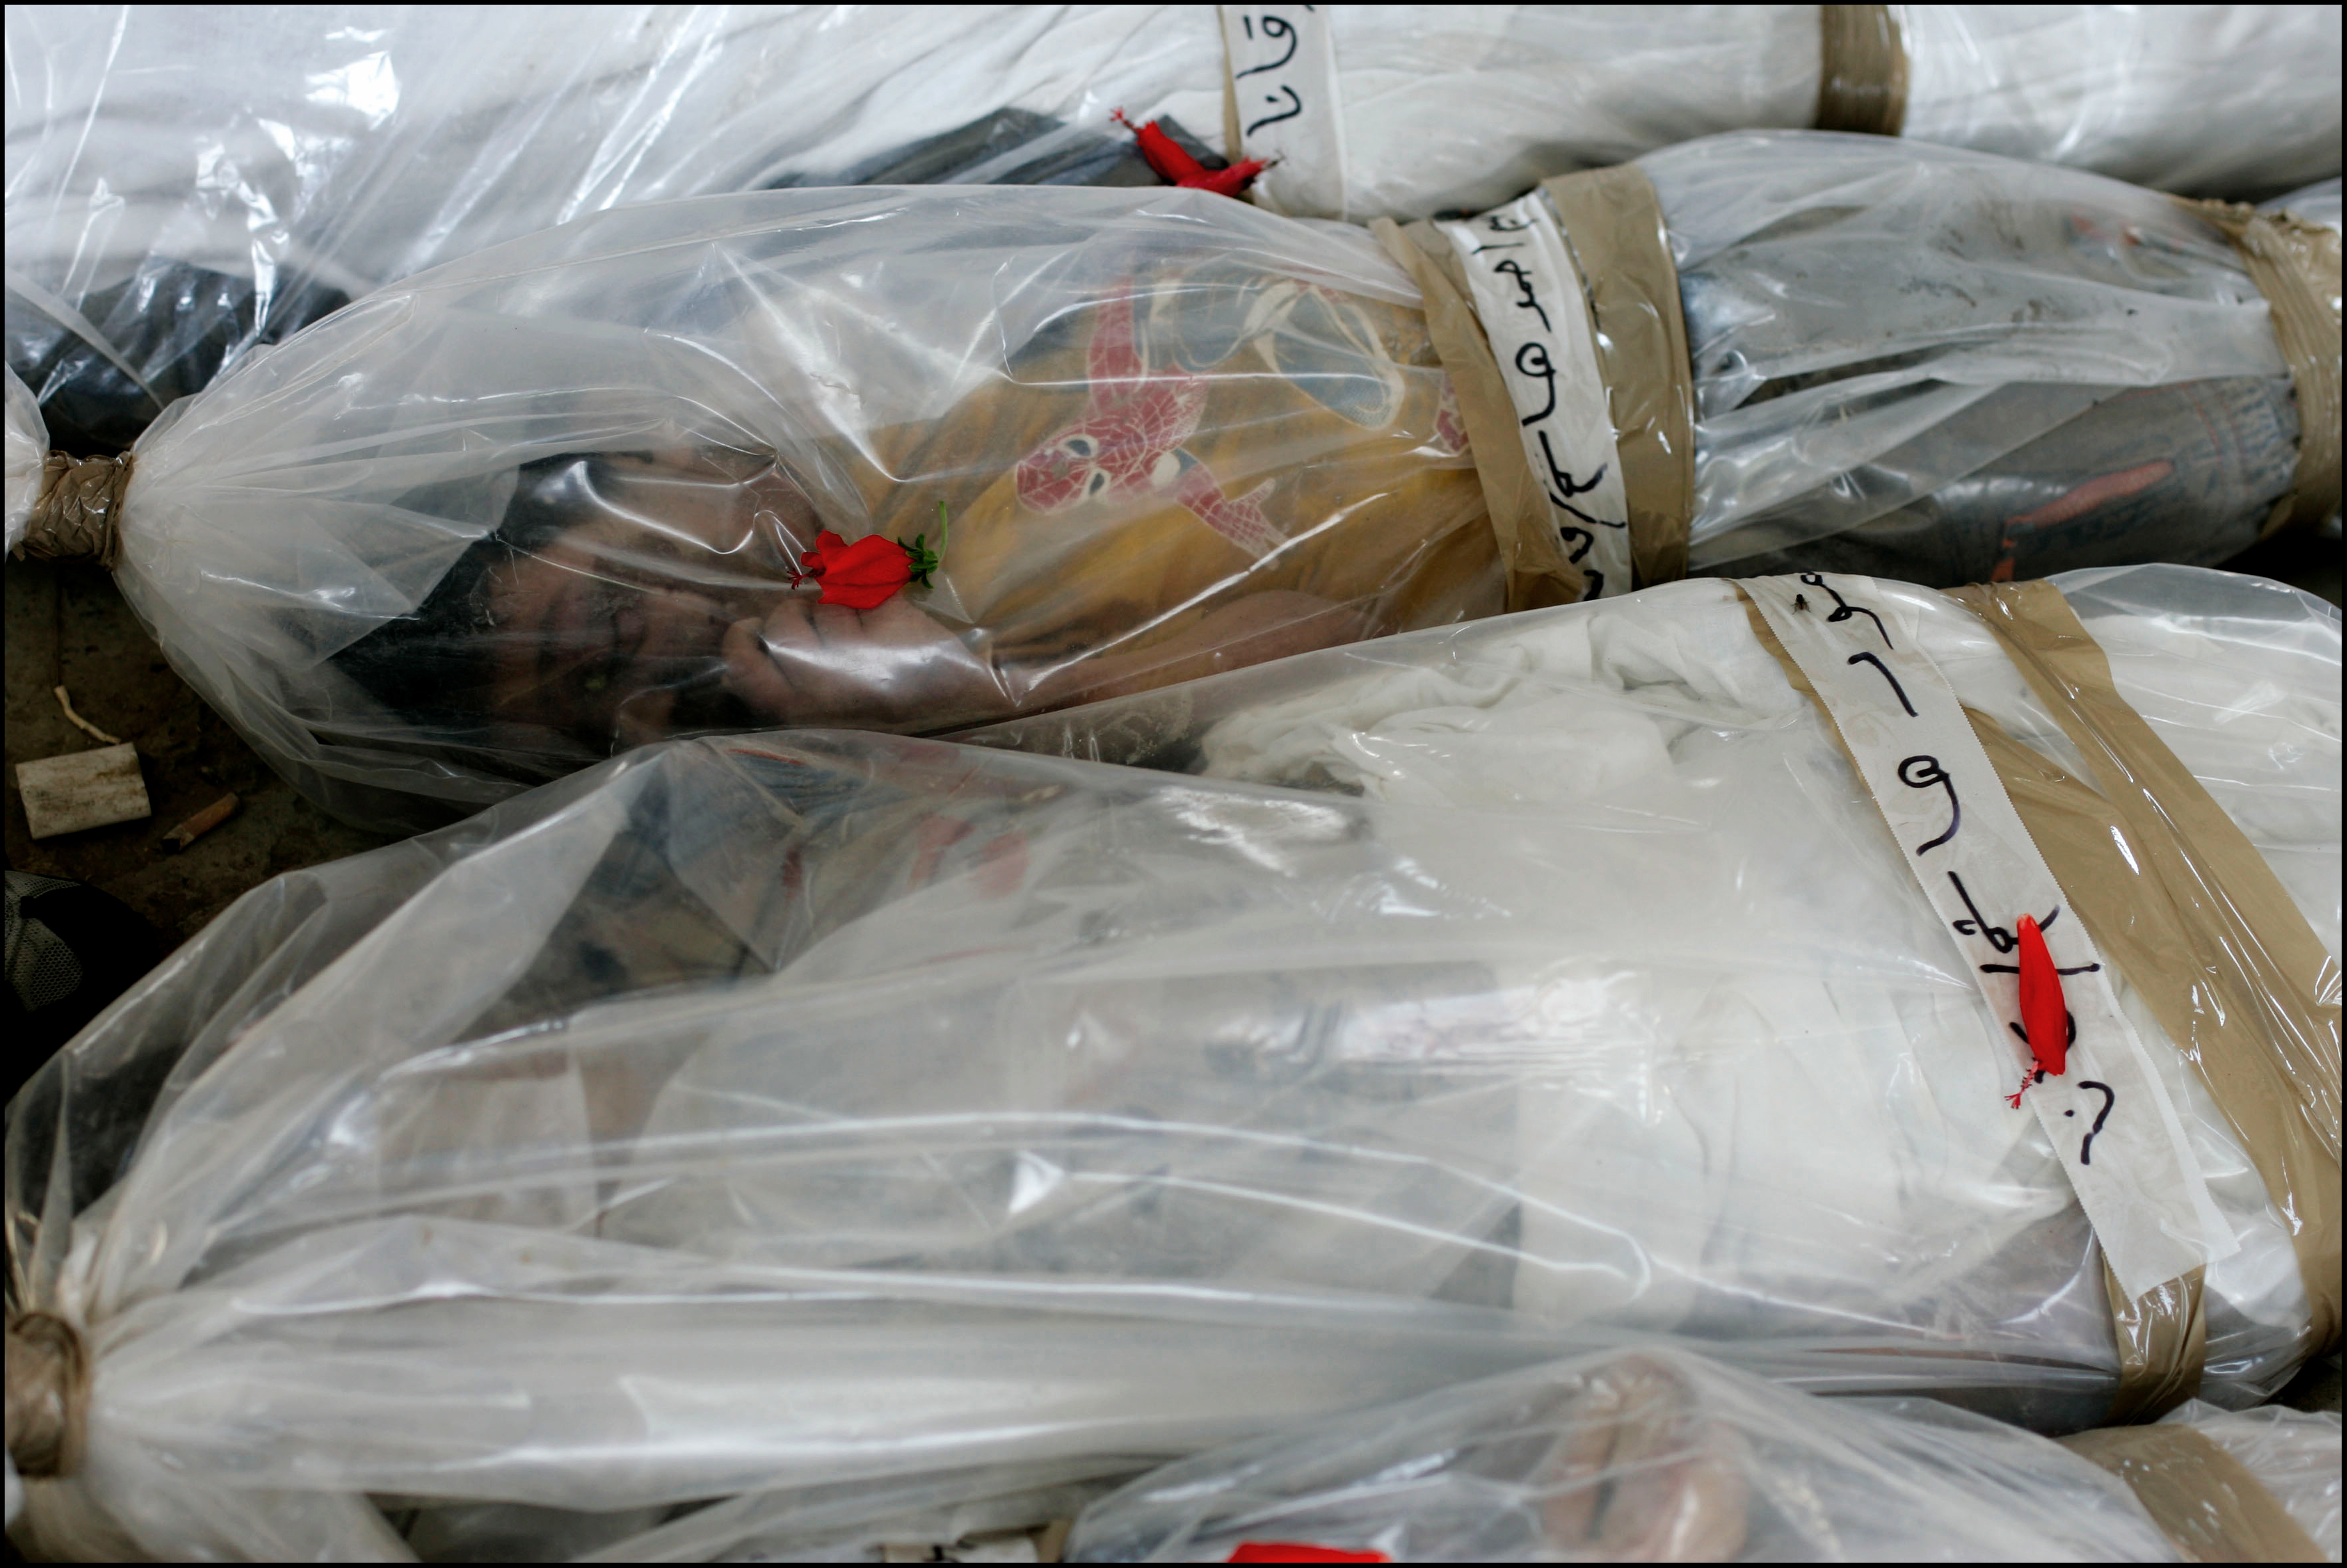 Corpses of some of the 50 civilians , mainly children, killed by israeli shelter bomb strike.